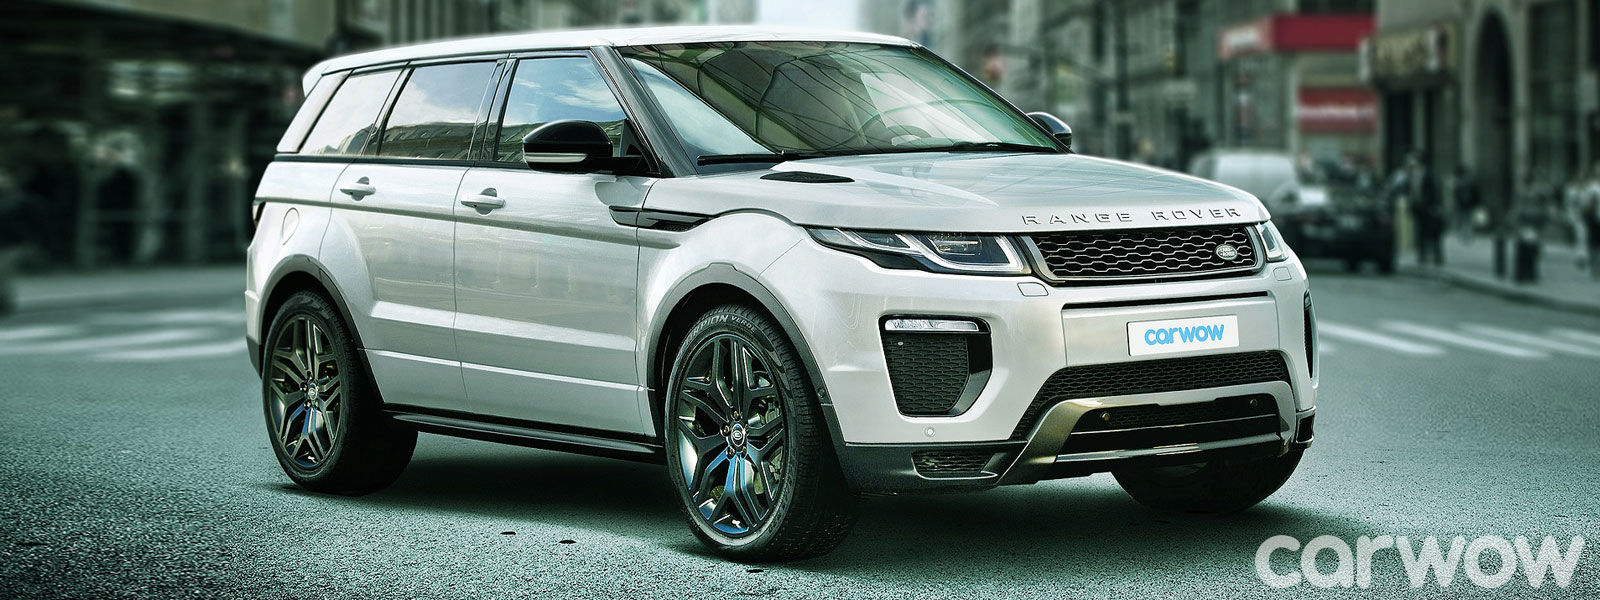 range rover evoque 7 seater price specs release date carwow. Black Bedroom Furniture Sets. Home Design Ideas